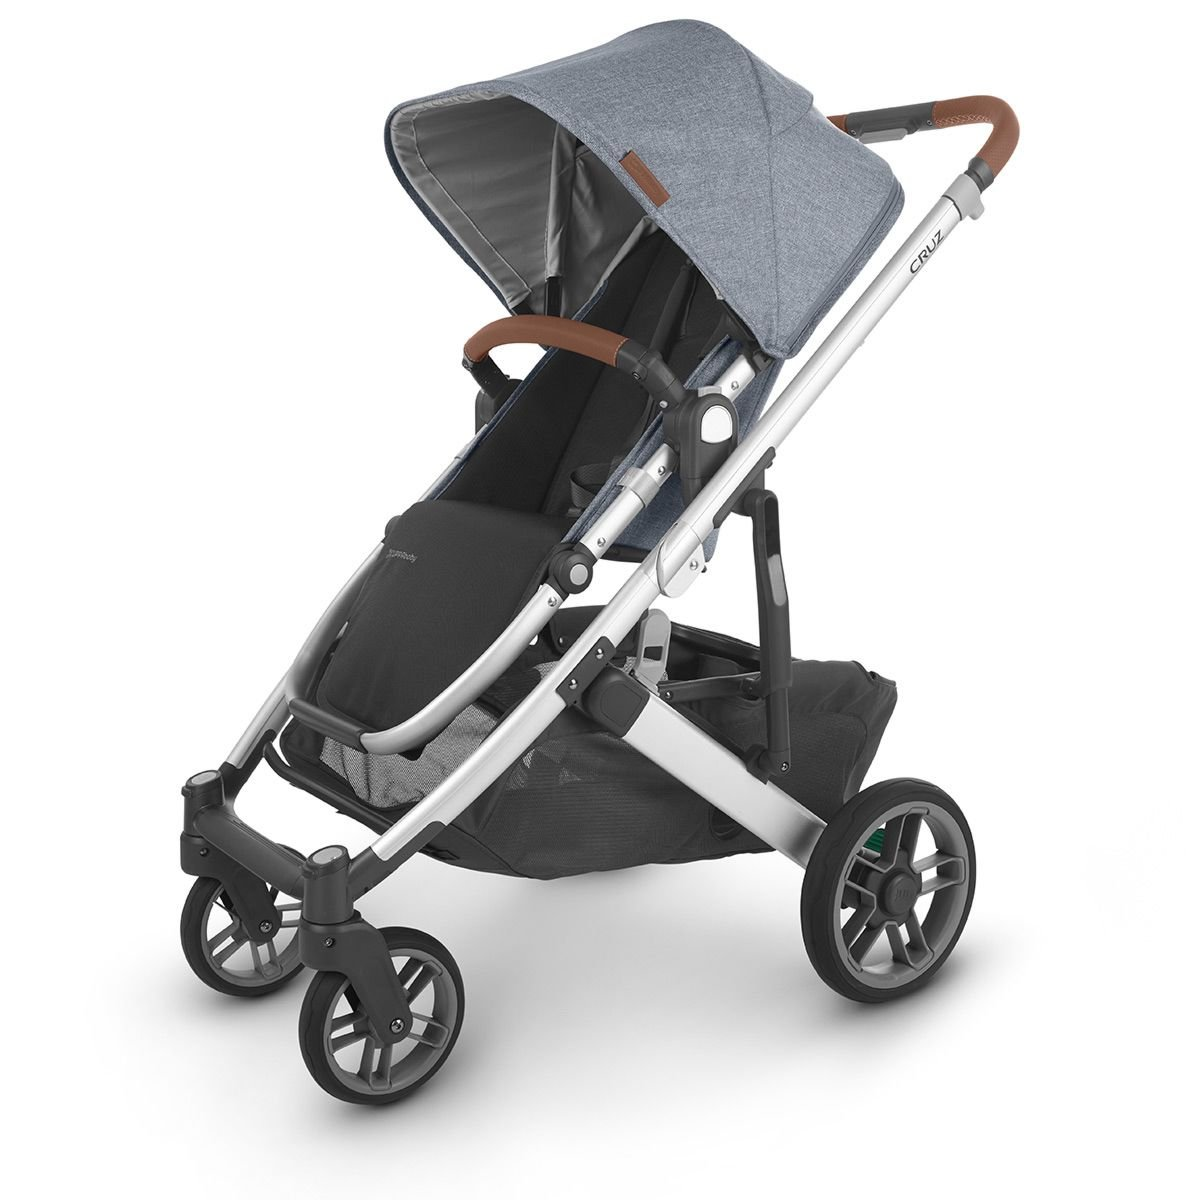 UPPABaby CRUZ V2 Stroller - GREGORY (Blue Melange/Silver/Saddle Leather)